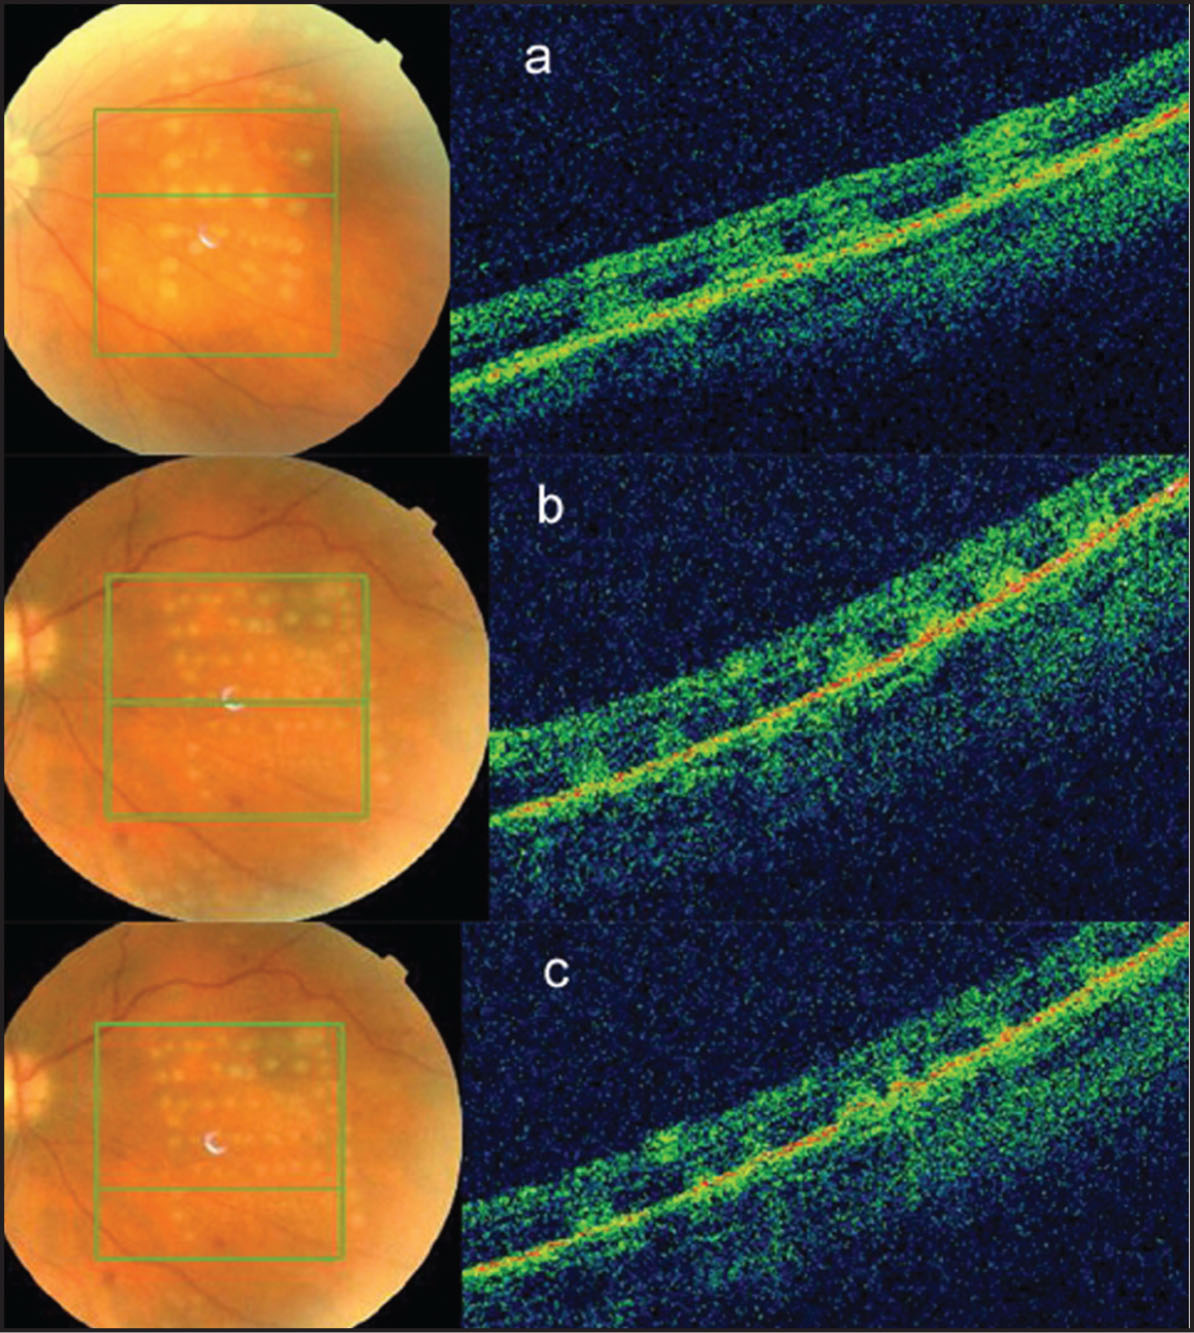 "(A) Clinically Visible ""threshold"" Laser Burns Are Clearly Seen on the Spectral Domain Optical Coherence Tomography (SD-OCT) Scan as Homogenous Diffuse Increase in Retinal Reflectivity Extending Across the Full Thickness of Retina. (B) Subthreshold Laser Burns that Are Less Distinctly Visible Clinically Are Detected on the SD-OCT Scan as Focal Areas of Increased Reflectivity. (C) Further Reduction in the Duration of Laser Exposure to 0.03 Second Creates Burns that Are not Visible Clinically but Are Detectable on the SD-OCT Scan as Focal Areas of Increased Reflectivity Confined to the Outer Retinal Layers."